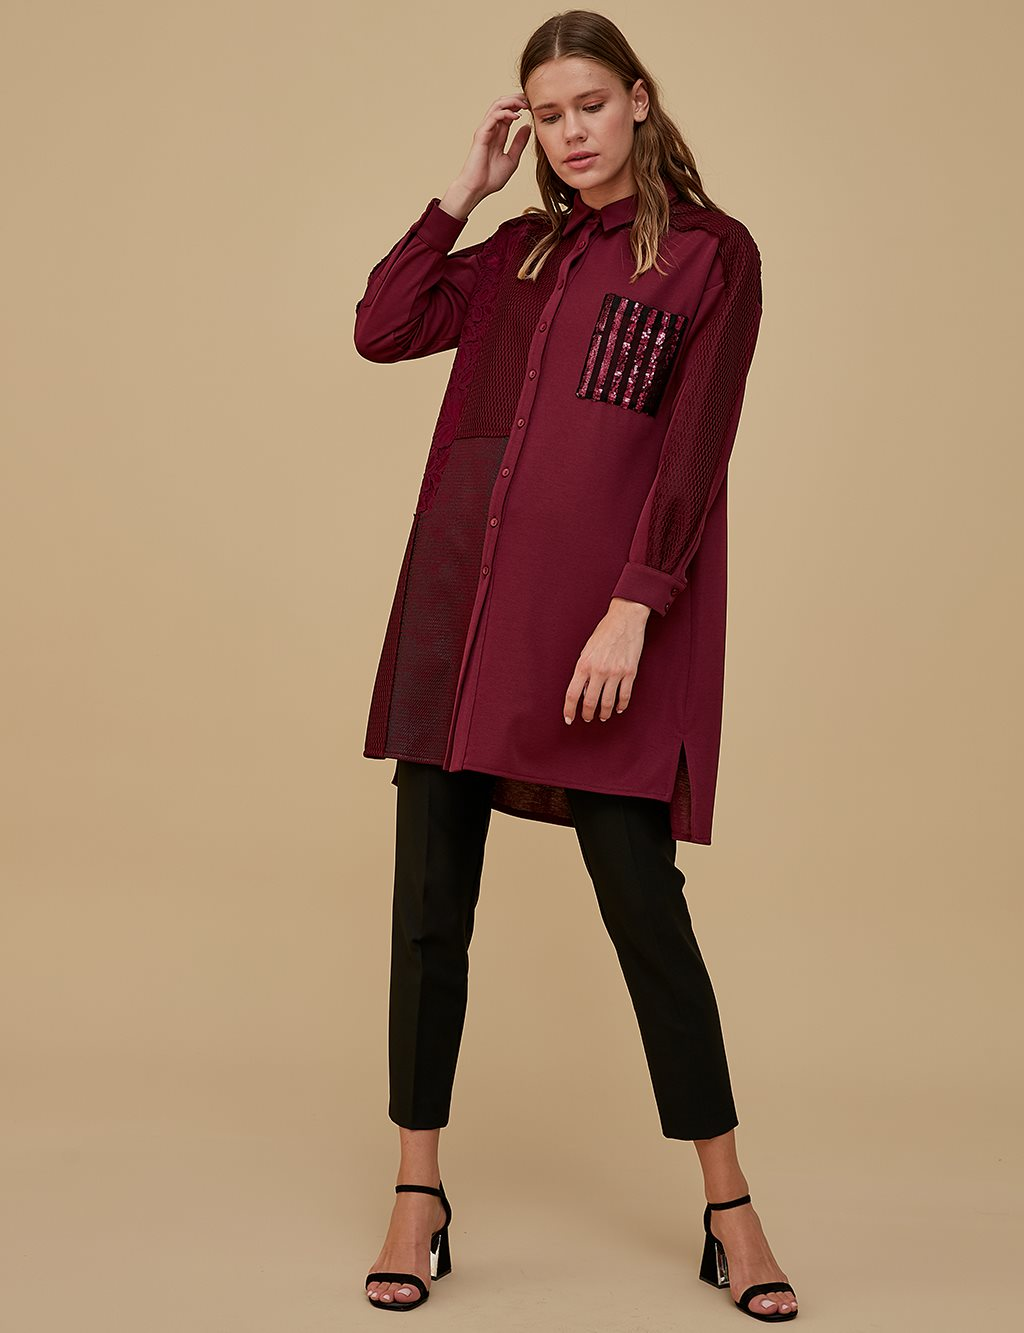 Sequin Detailed Tunic A9 21206 Burgundy